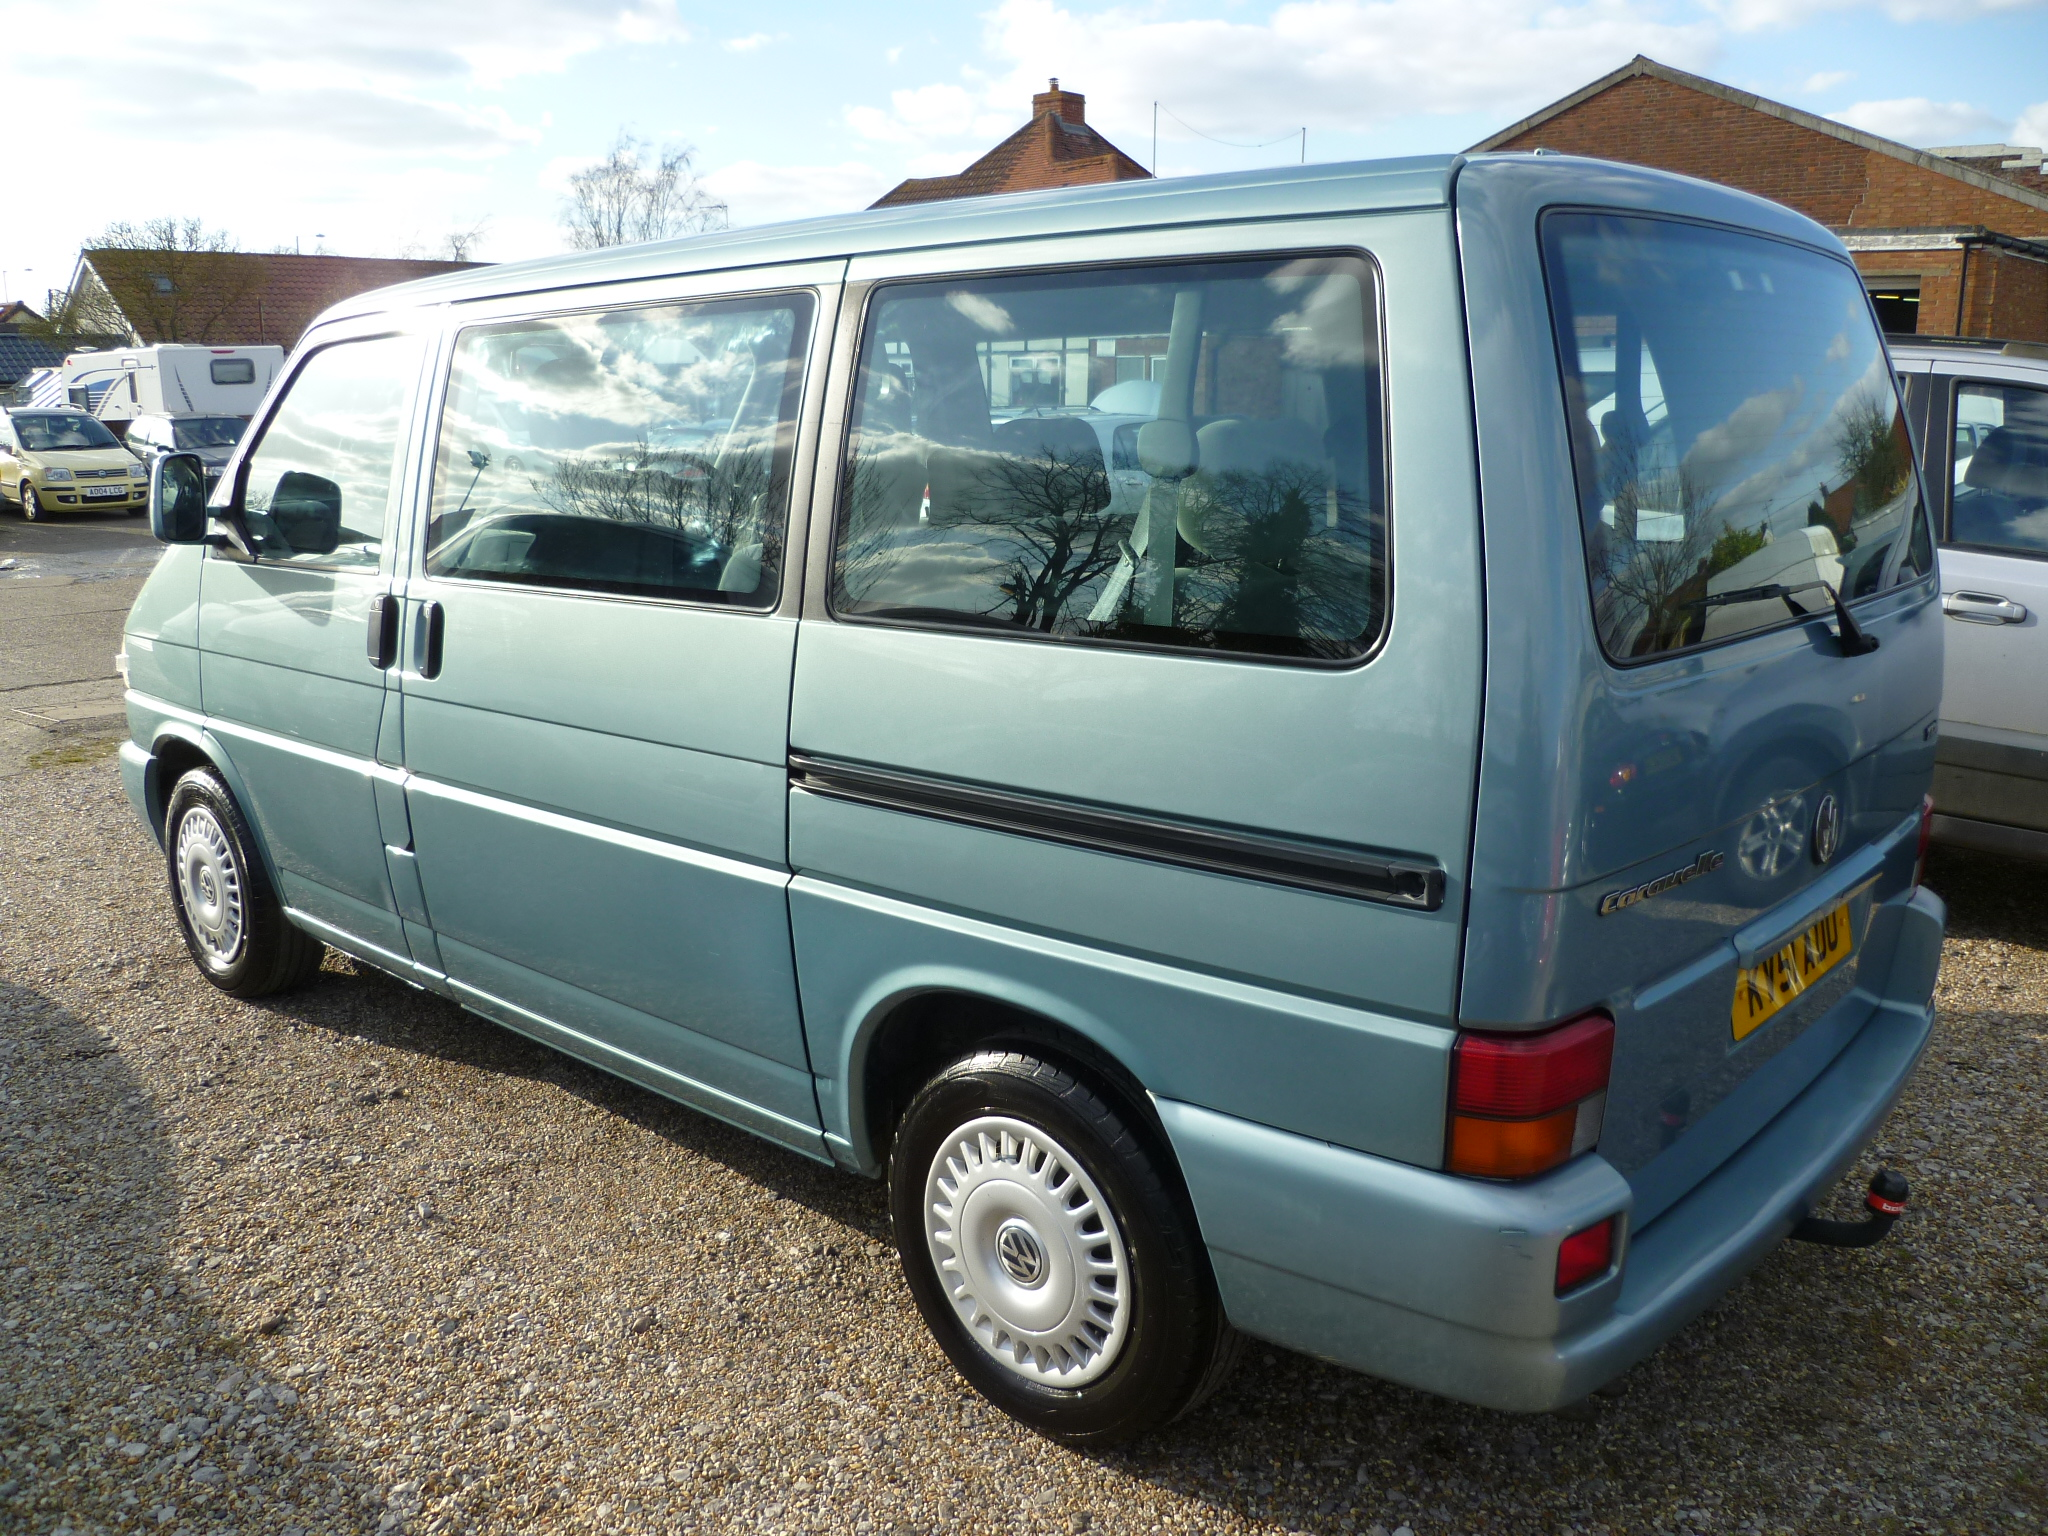 VW Caravelle 2.5TDI Automatic 005